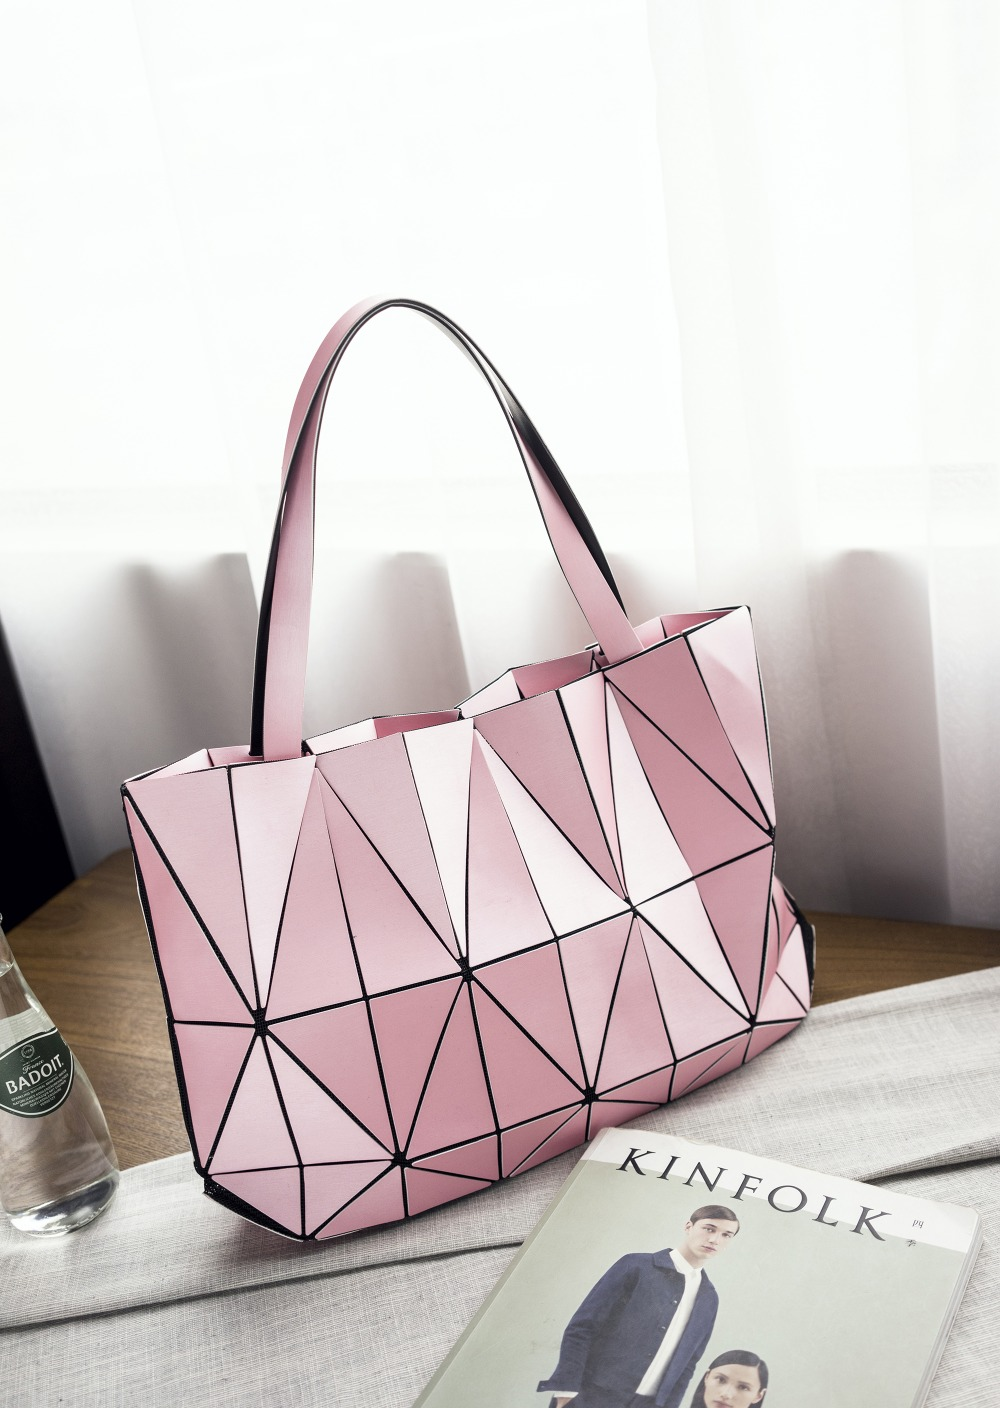 2017 Brand Women Fashion Triangle Laser BaoBao Bag Female Tote Diamond Geometry Quilted Handbag Mosaic Shoulder Bags with LOGO 2015 hot fashion top top quality same as baobao 1 1 women s lattice geometry quilted handbag geometric mosaic totes bag6 6